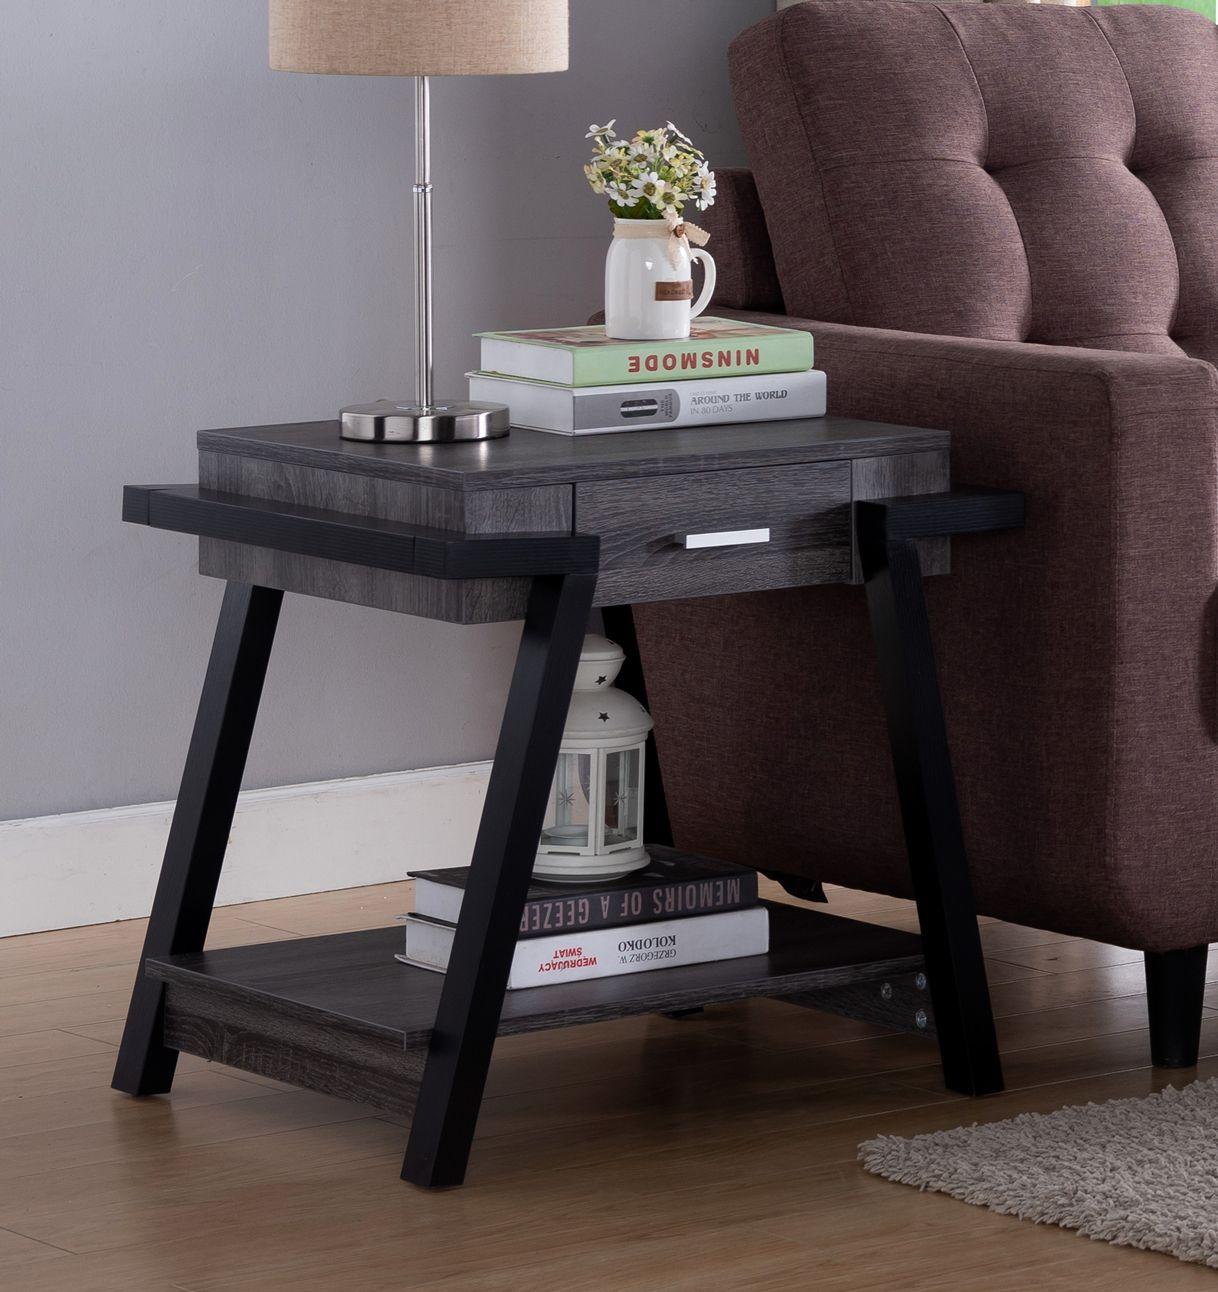 Id Usa 182339et Distressed Grey Black End Table Unique End Tables End Tables With Storage End Tables With Drawers